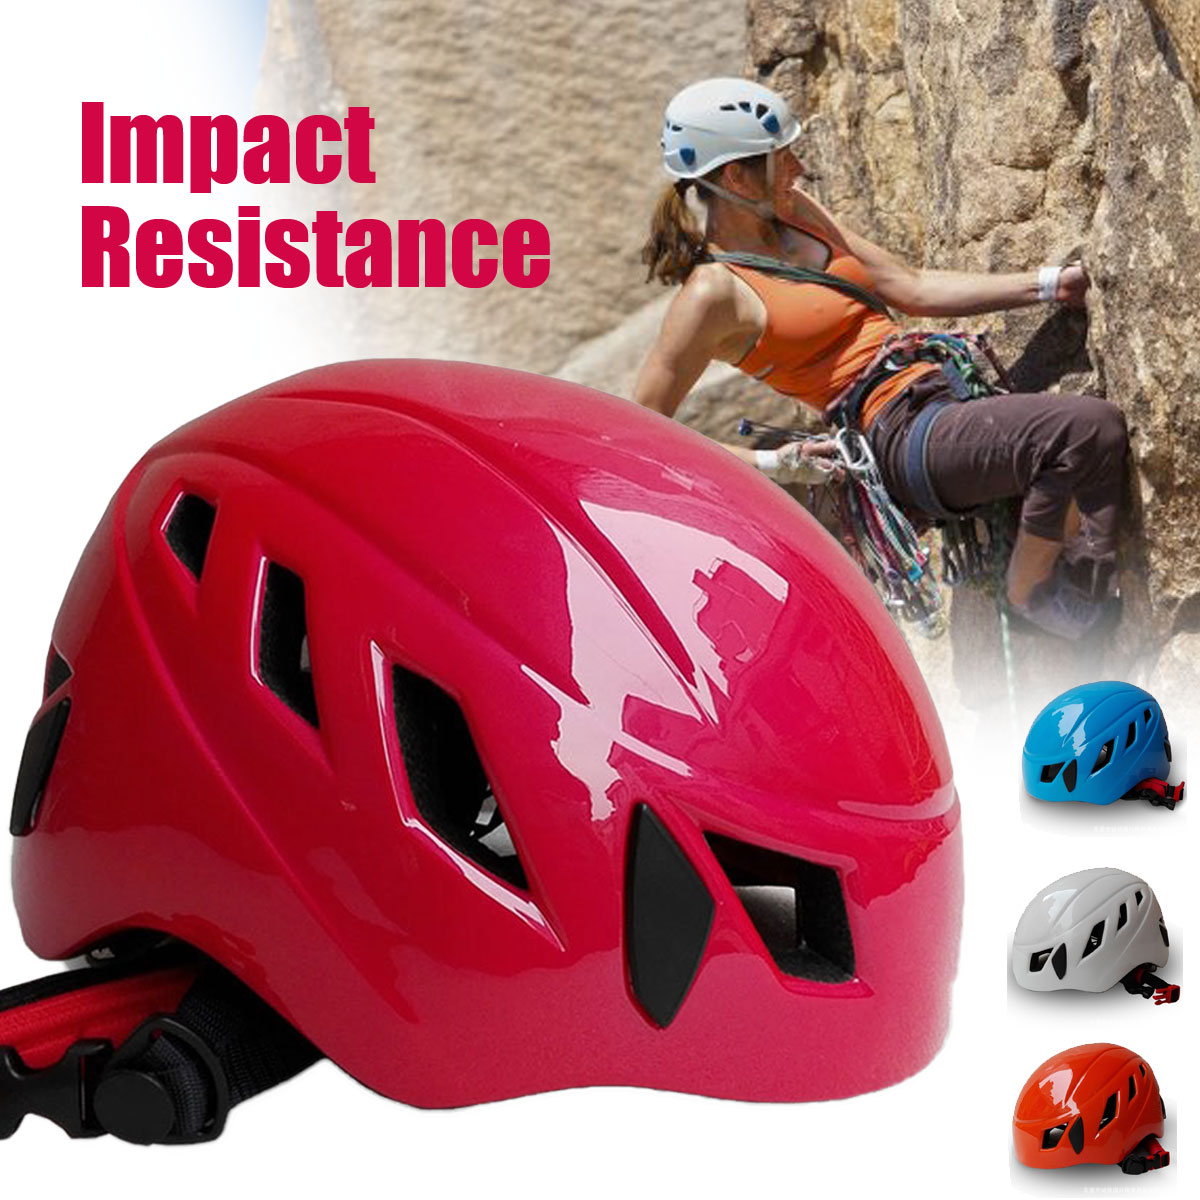 Safurance Outdoor Unisex Climbing Safety Helmet Hard Hat Construction Work Riot Helmet Rescue Construction Work Helmet цена